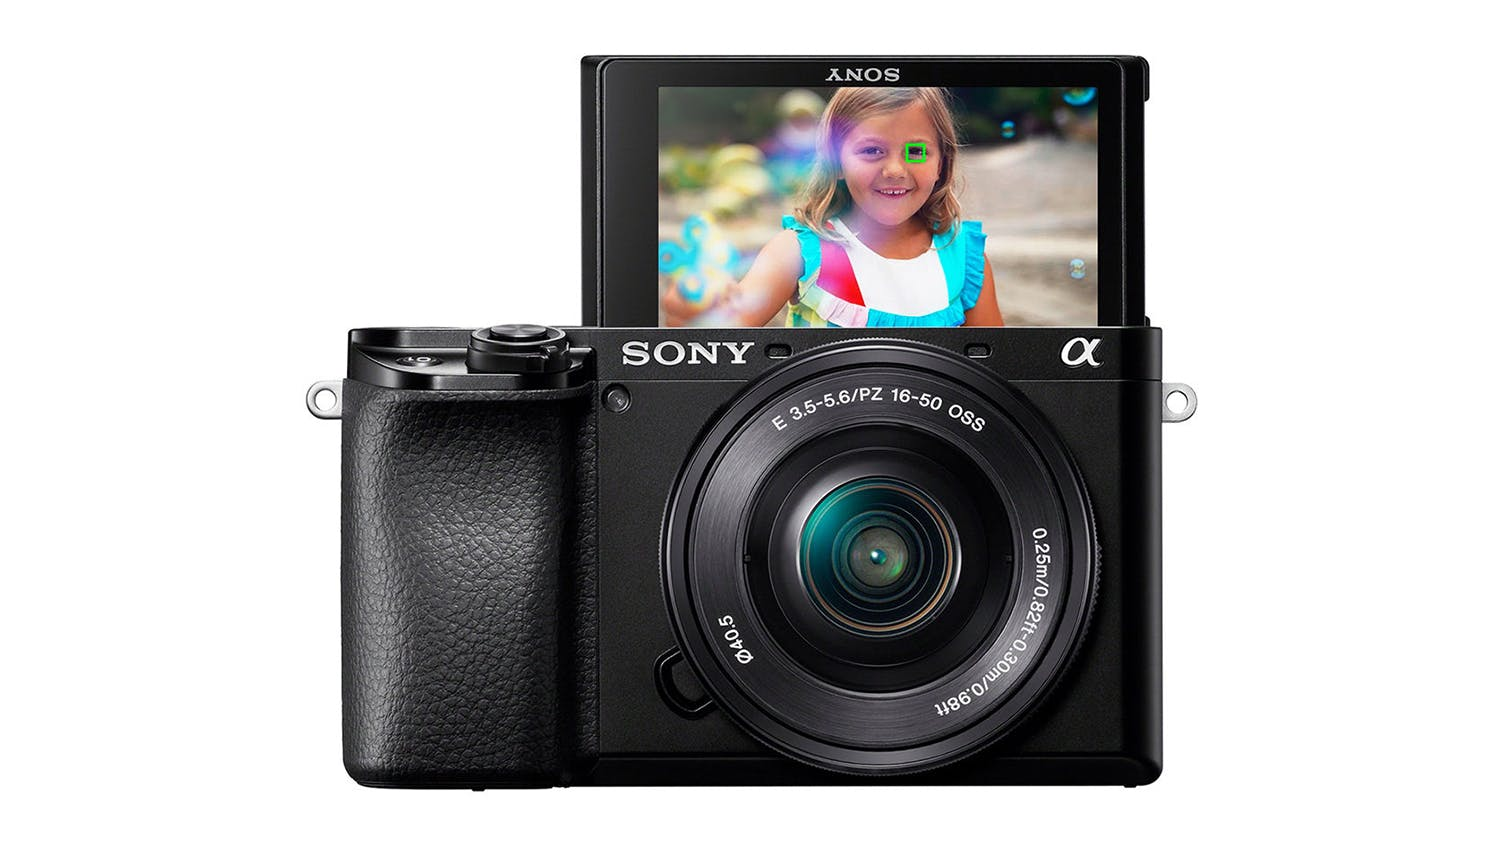 Sony Alpha A6100 Mirrorless Camera with 16-50mm Lens